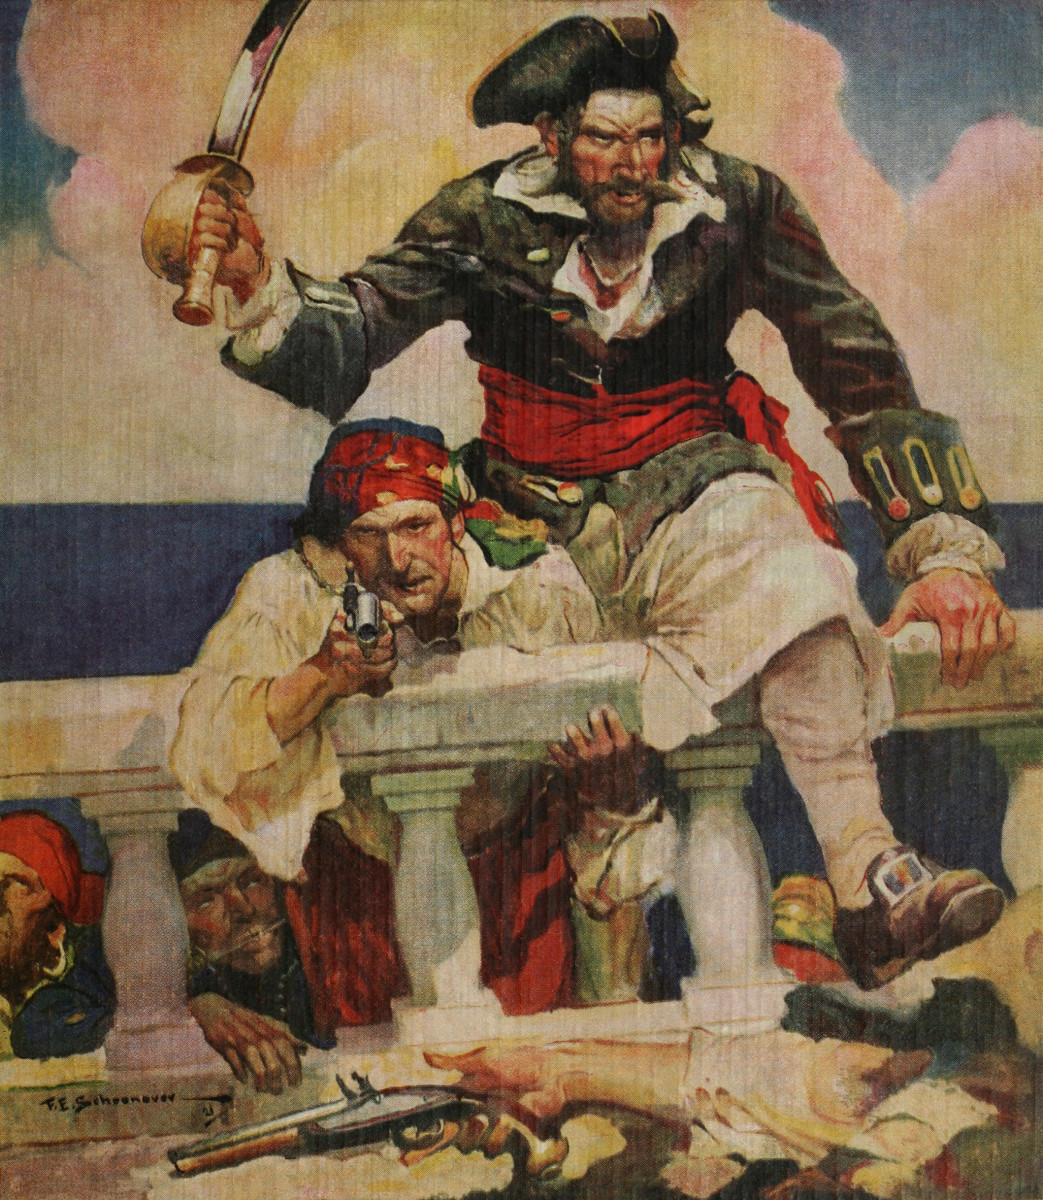 Blackbeard used many scare tactics when hopping aboard a ship, which would cause so much fear that few put up a fight.